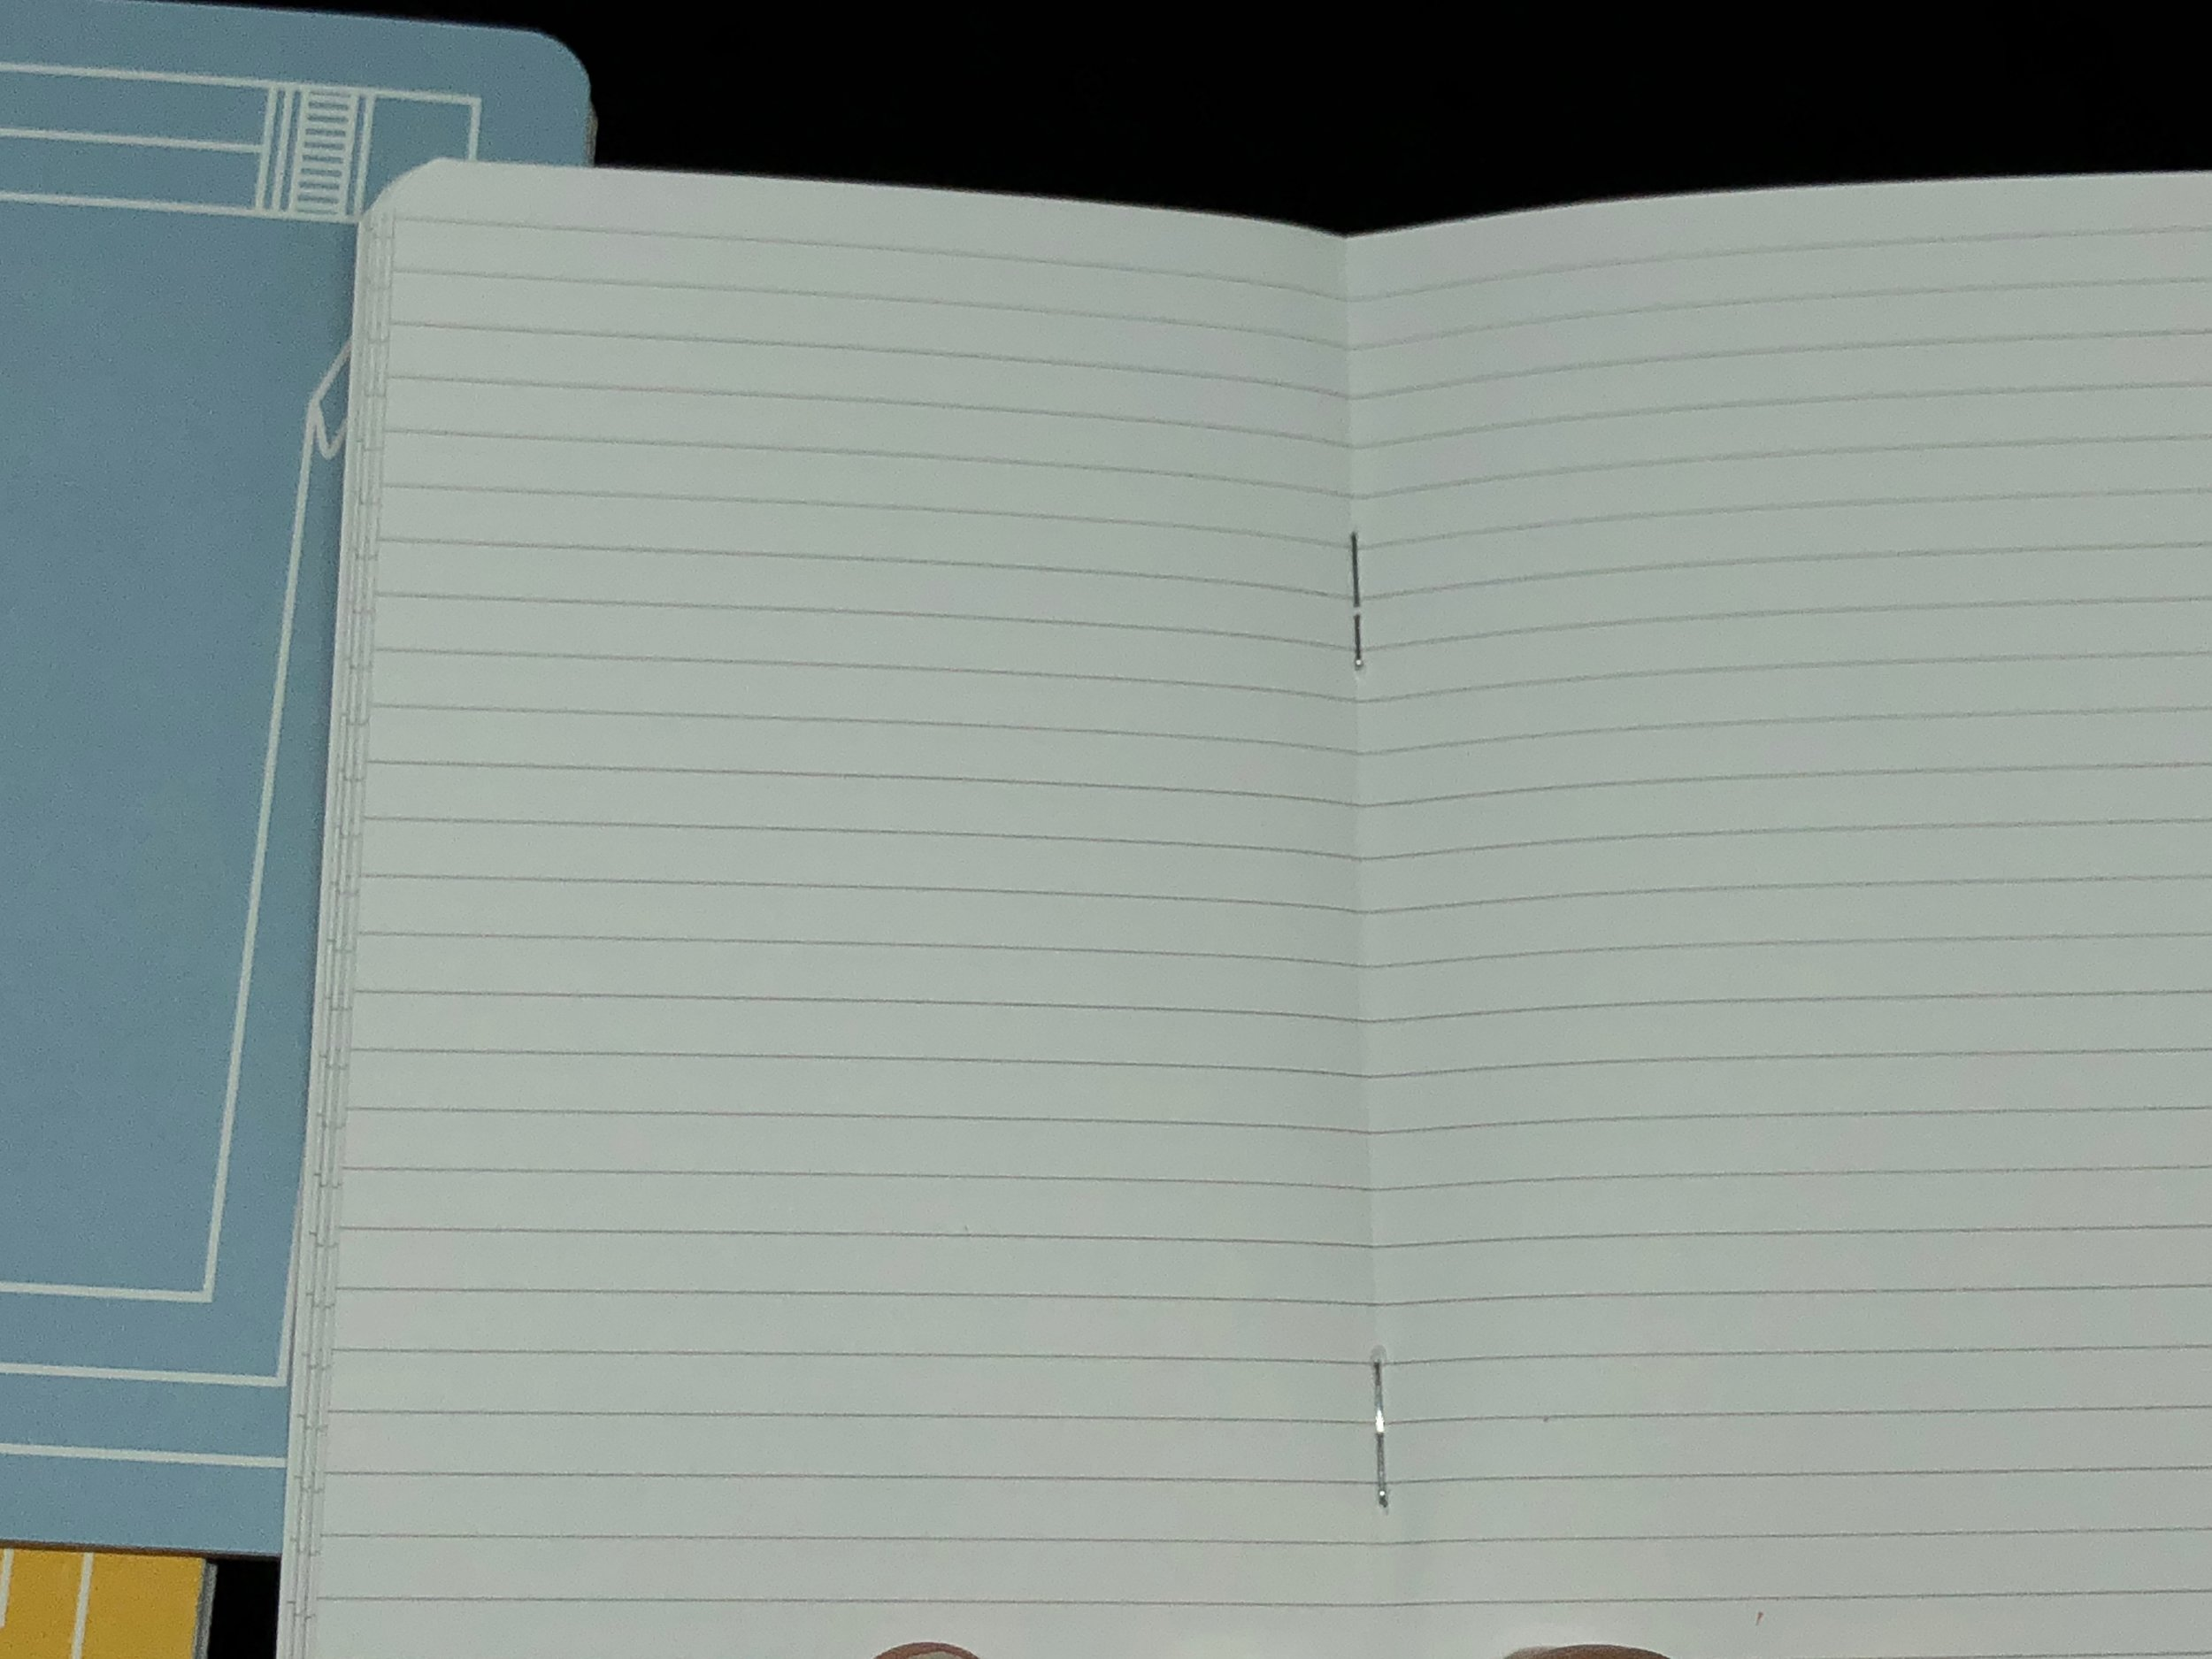 story-supply-co-pencil-pusher-notebook-4.jpg